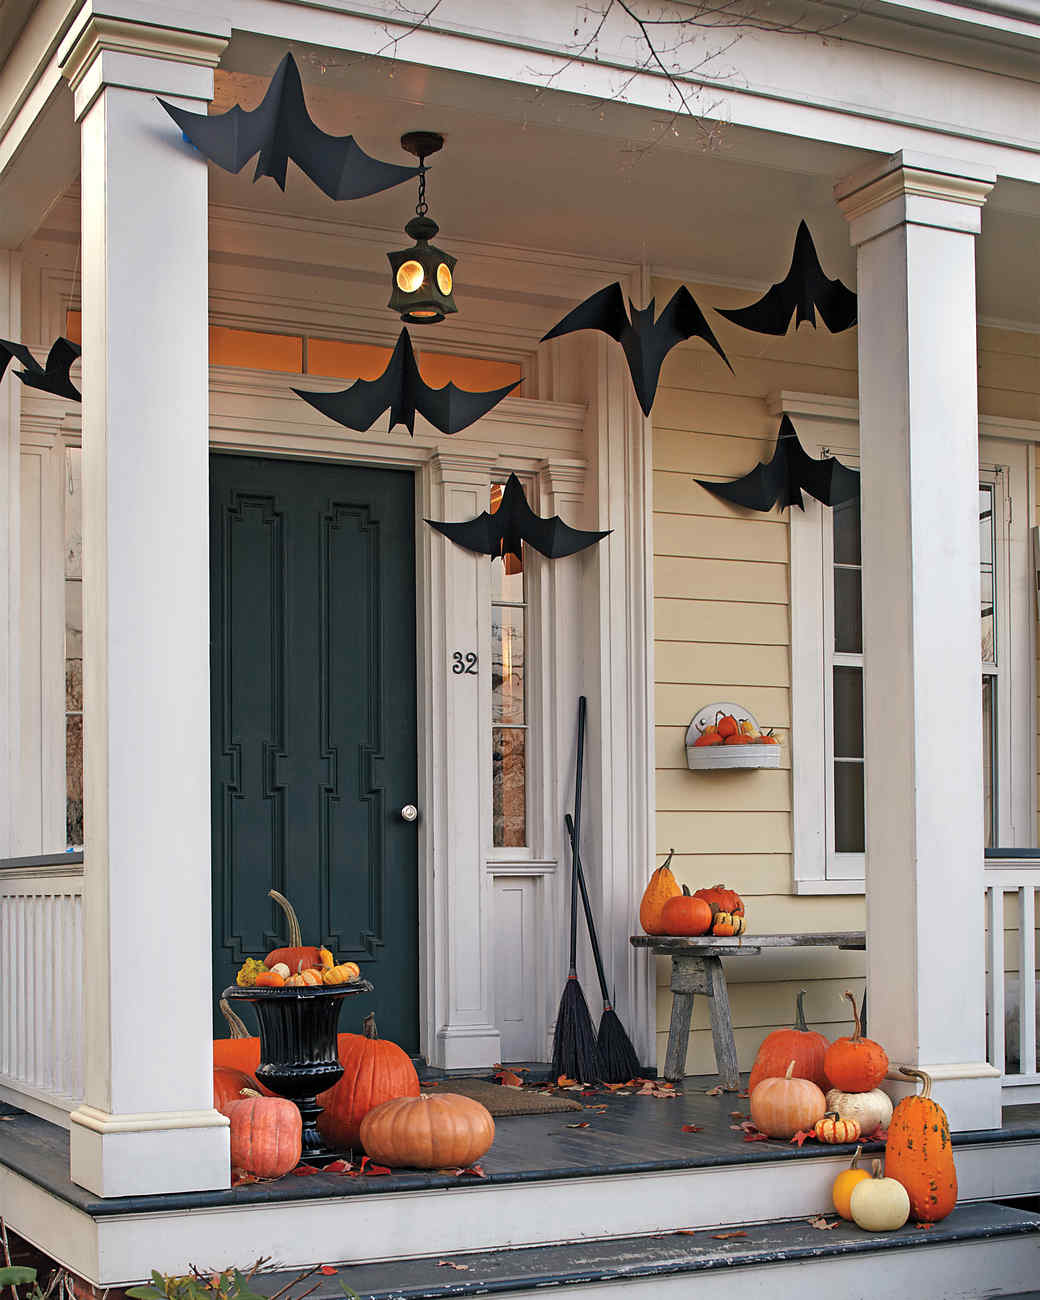 Outdoor halloween decorations 2014 - Hanging Bats